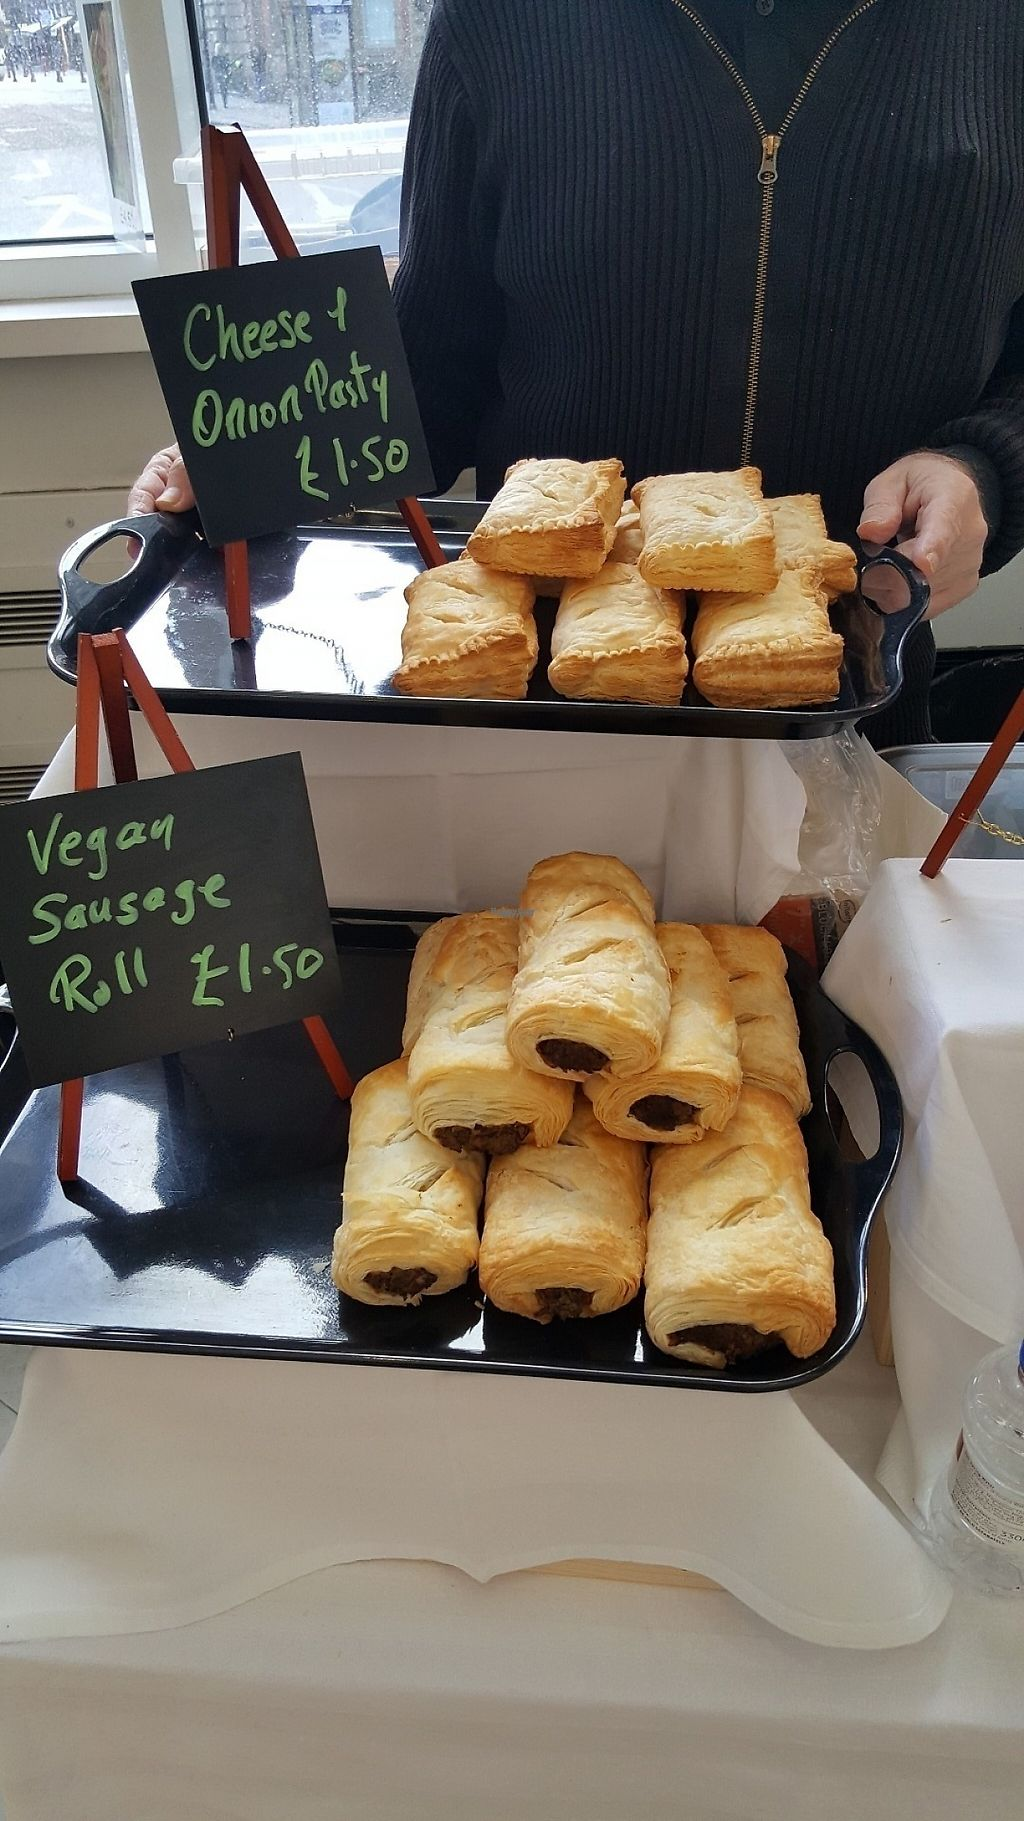 "Photo of Suffresh  by <a href=""/members/profile/Clare"">Clare</a> <br/>Vegan sausage rolls and pasties <br/> January 21, 2017  - <a href='/contact/abuse/image/85863/214367'>Report</a>"